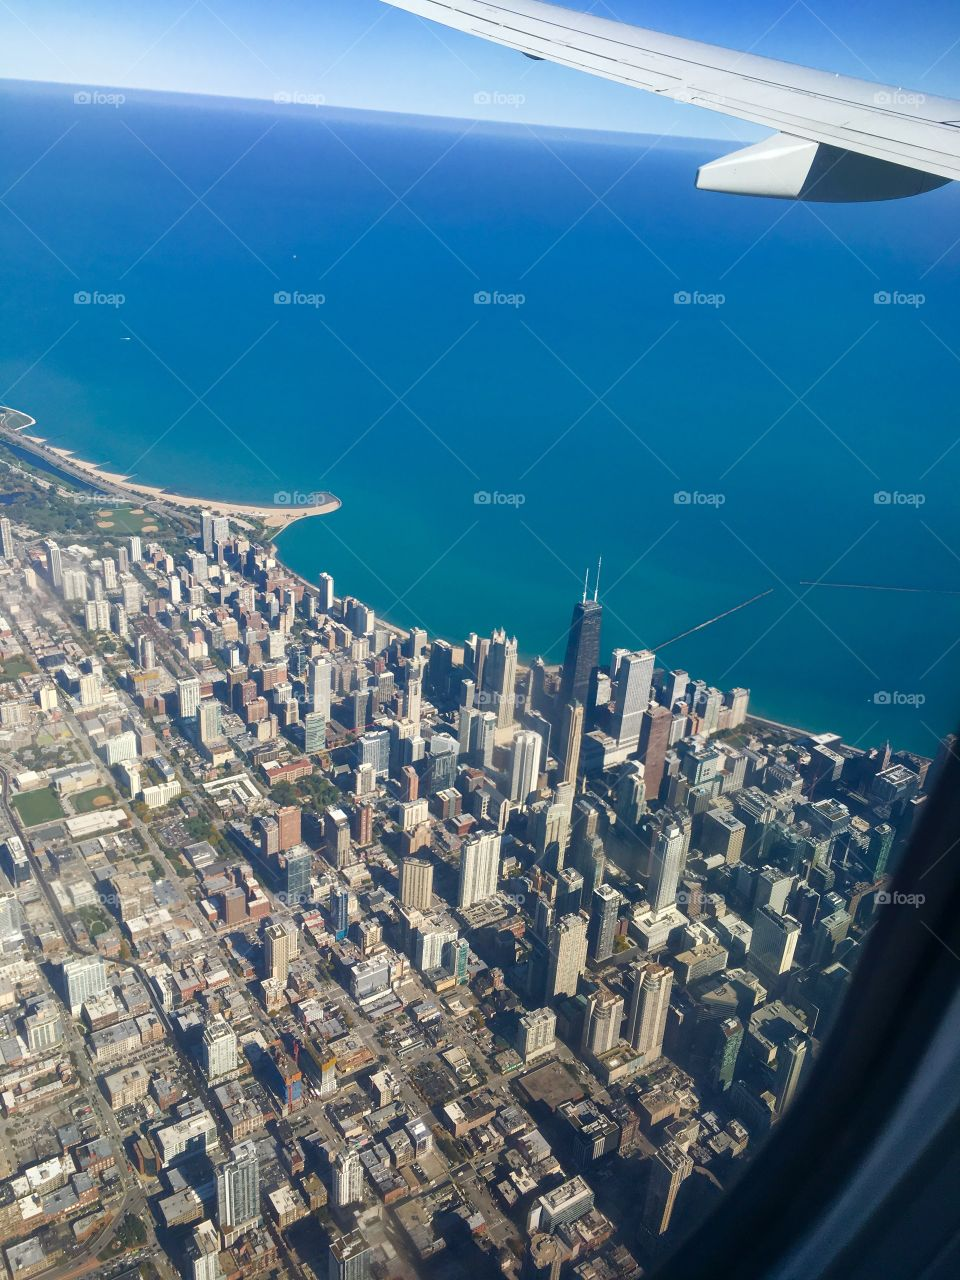 One more of Chicago from above.